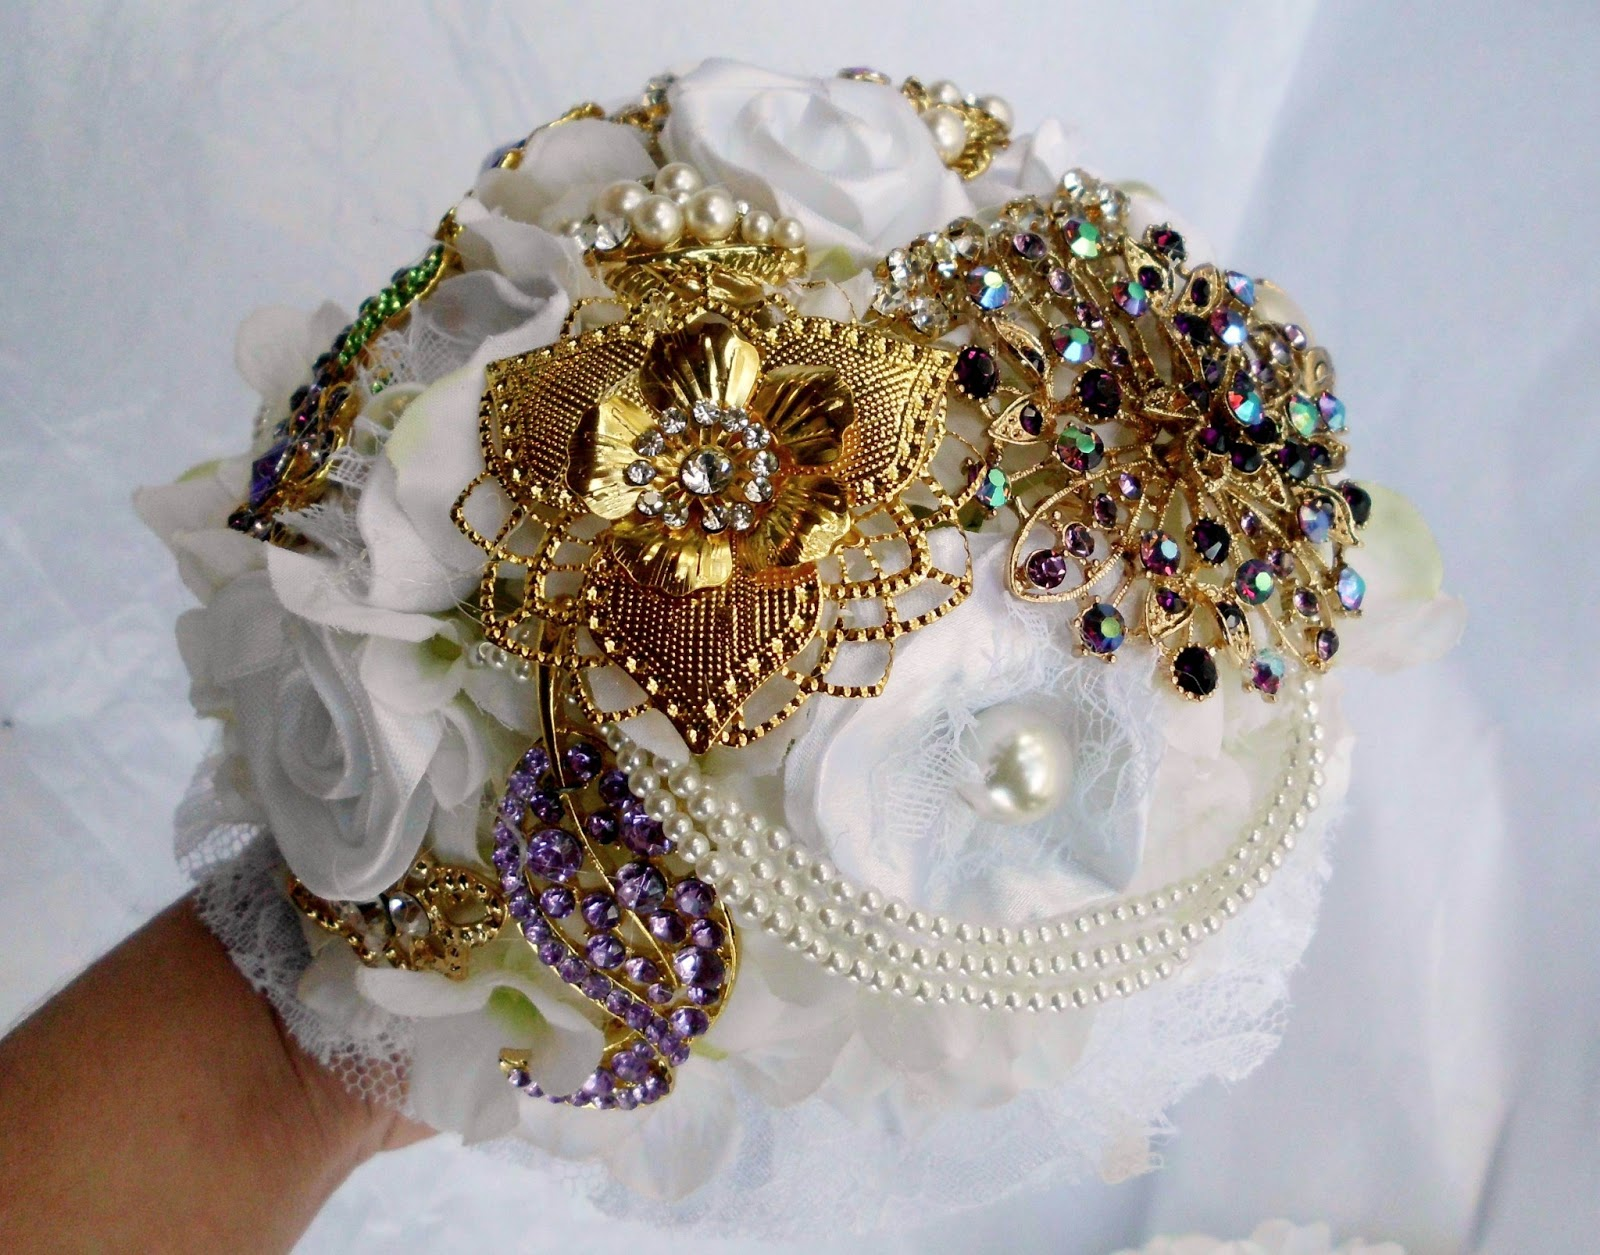 Have it all fabric flower bridal bouquets for handmade weddings fabric flower bridal bouquets for handmade weddings izmirmasajfo